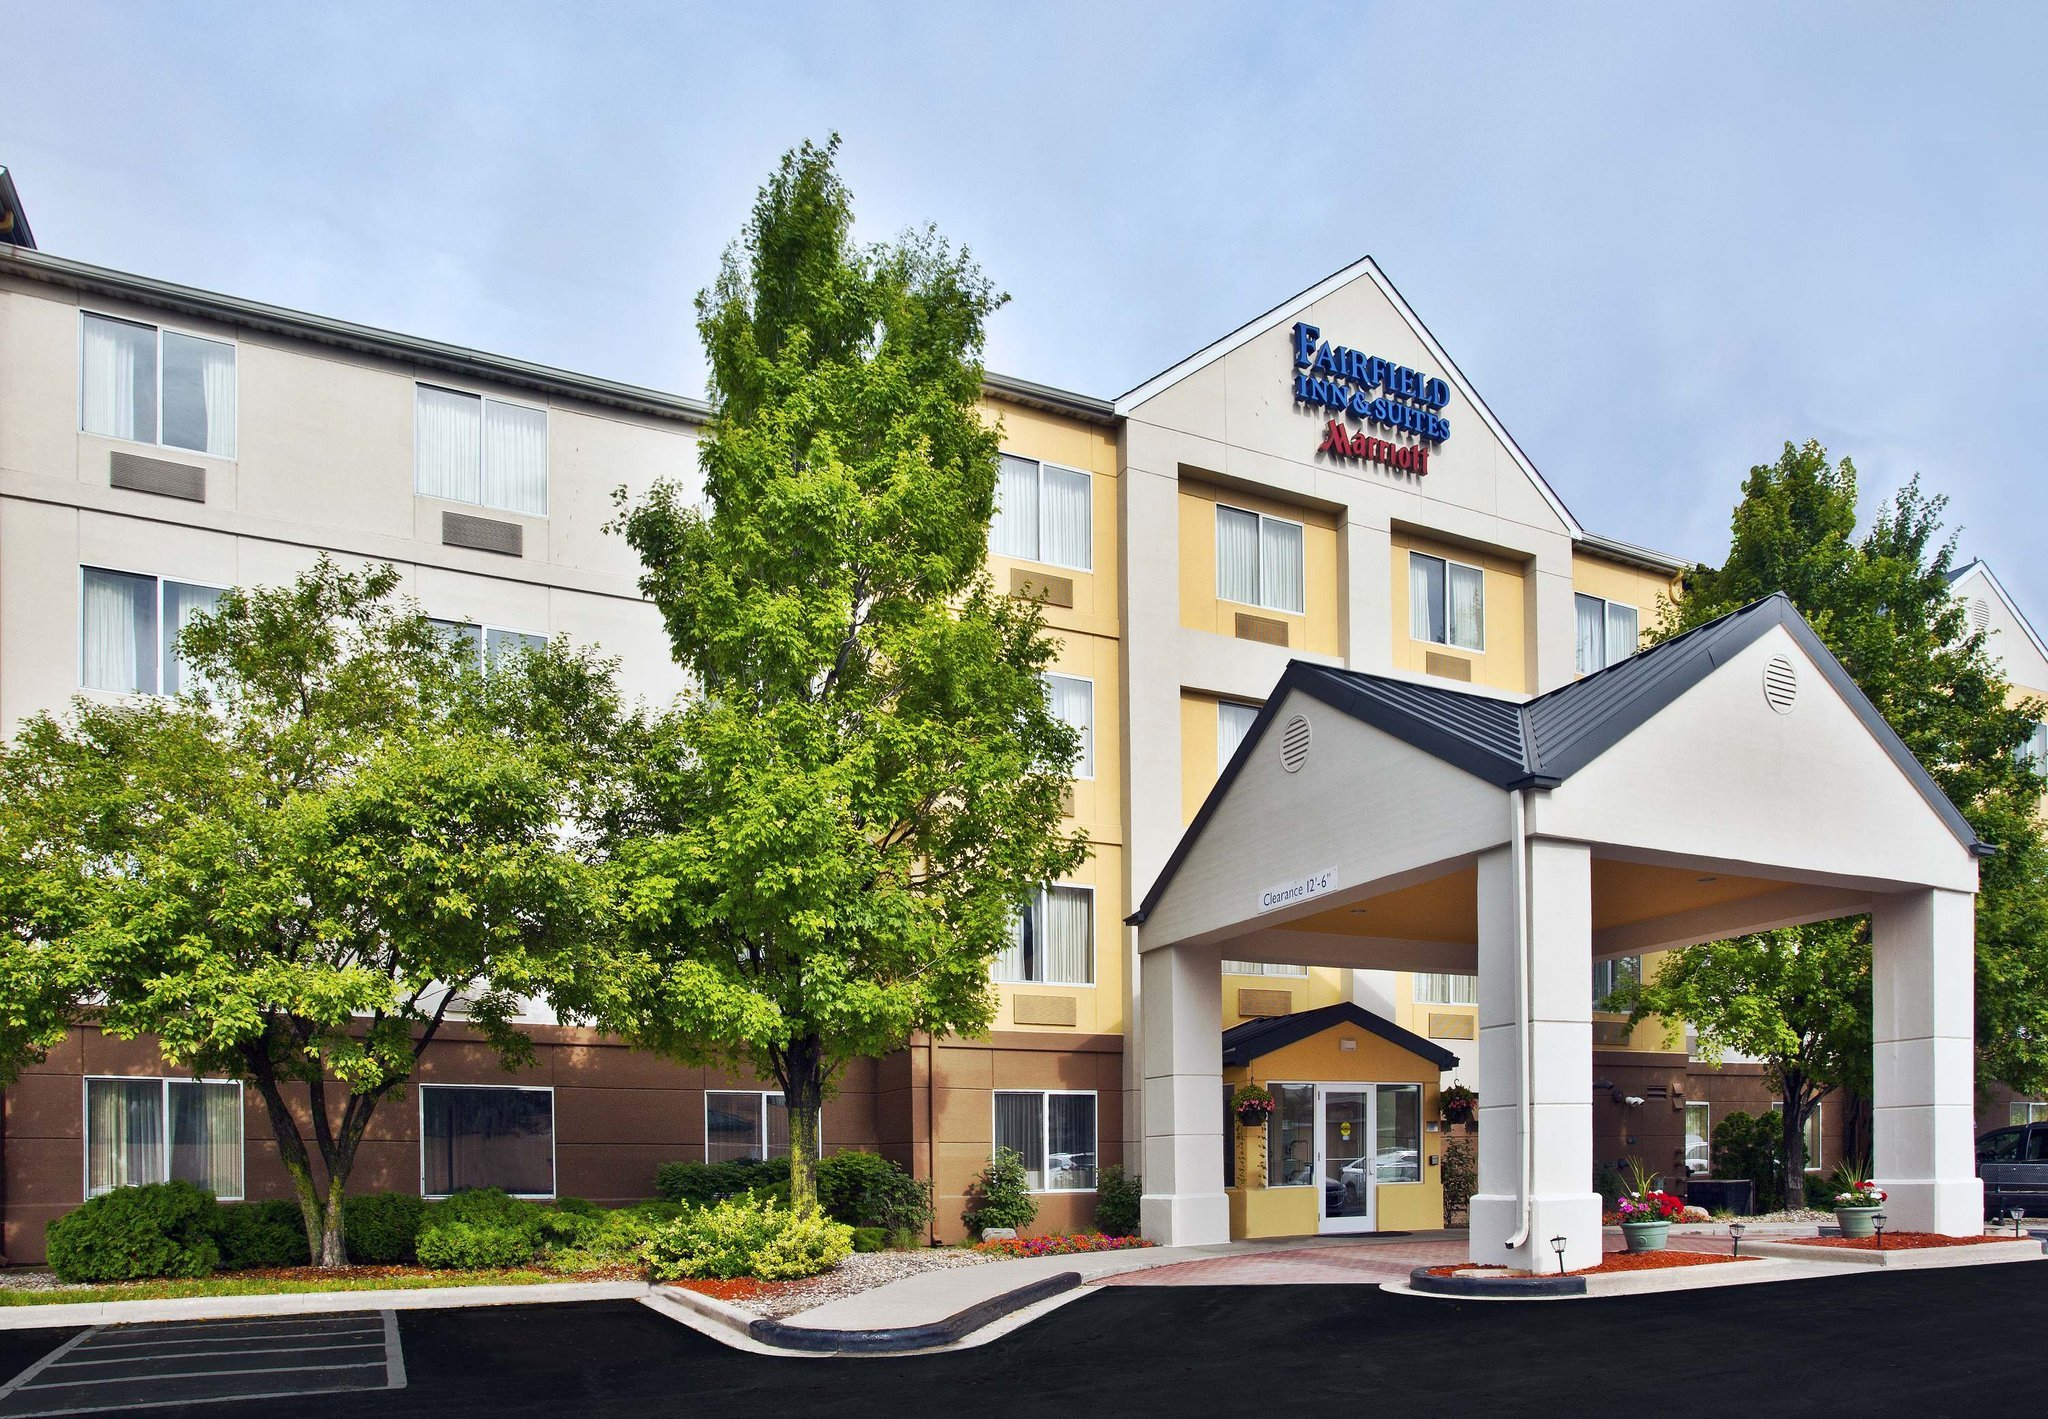 Fairfield Inn & Suites Chicago Southeast/Hammond, IN